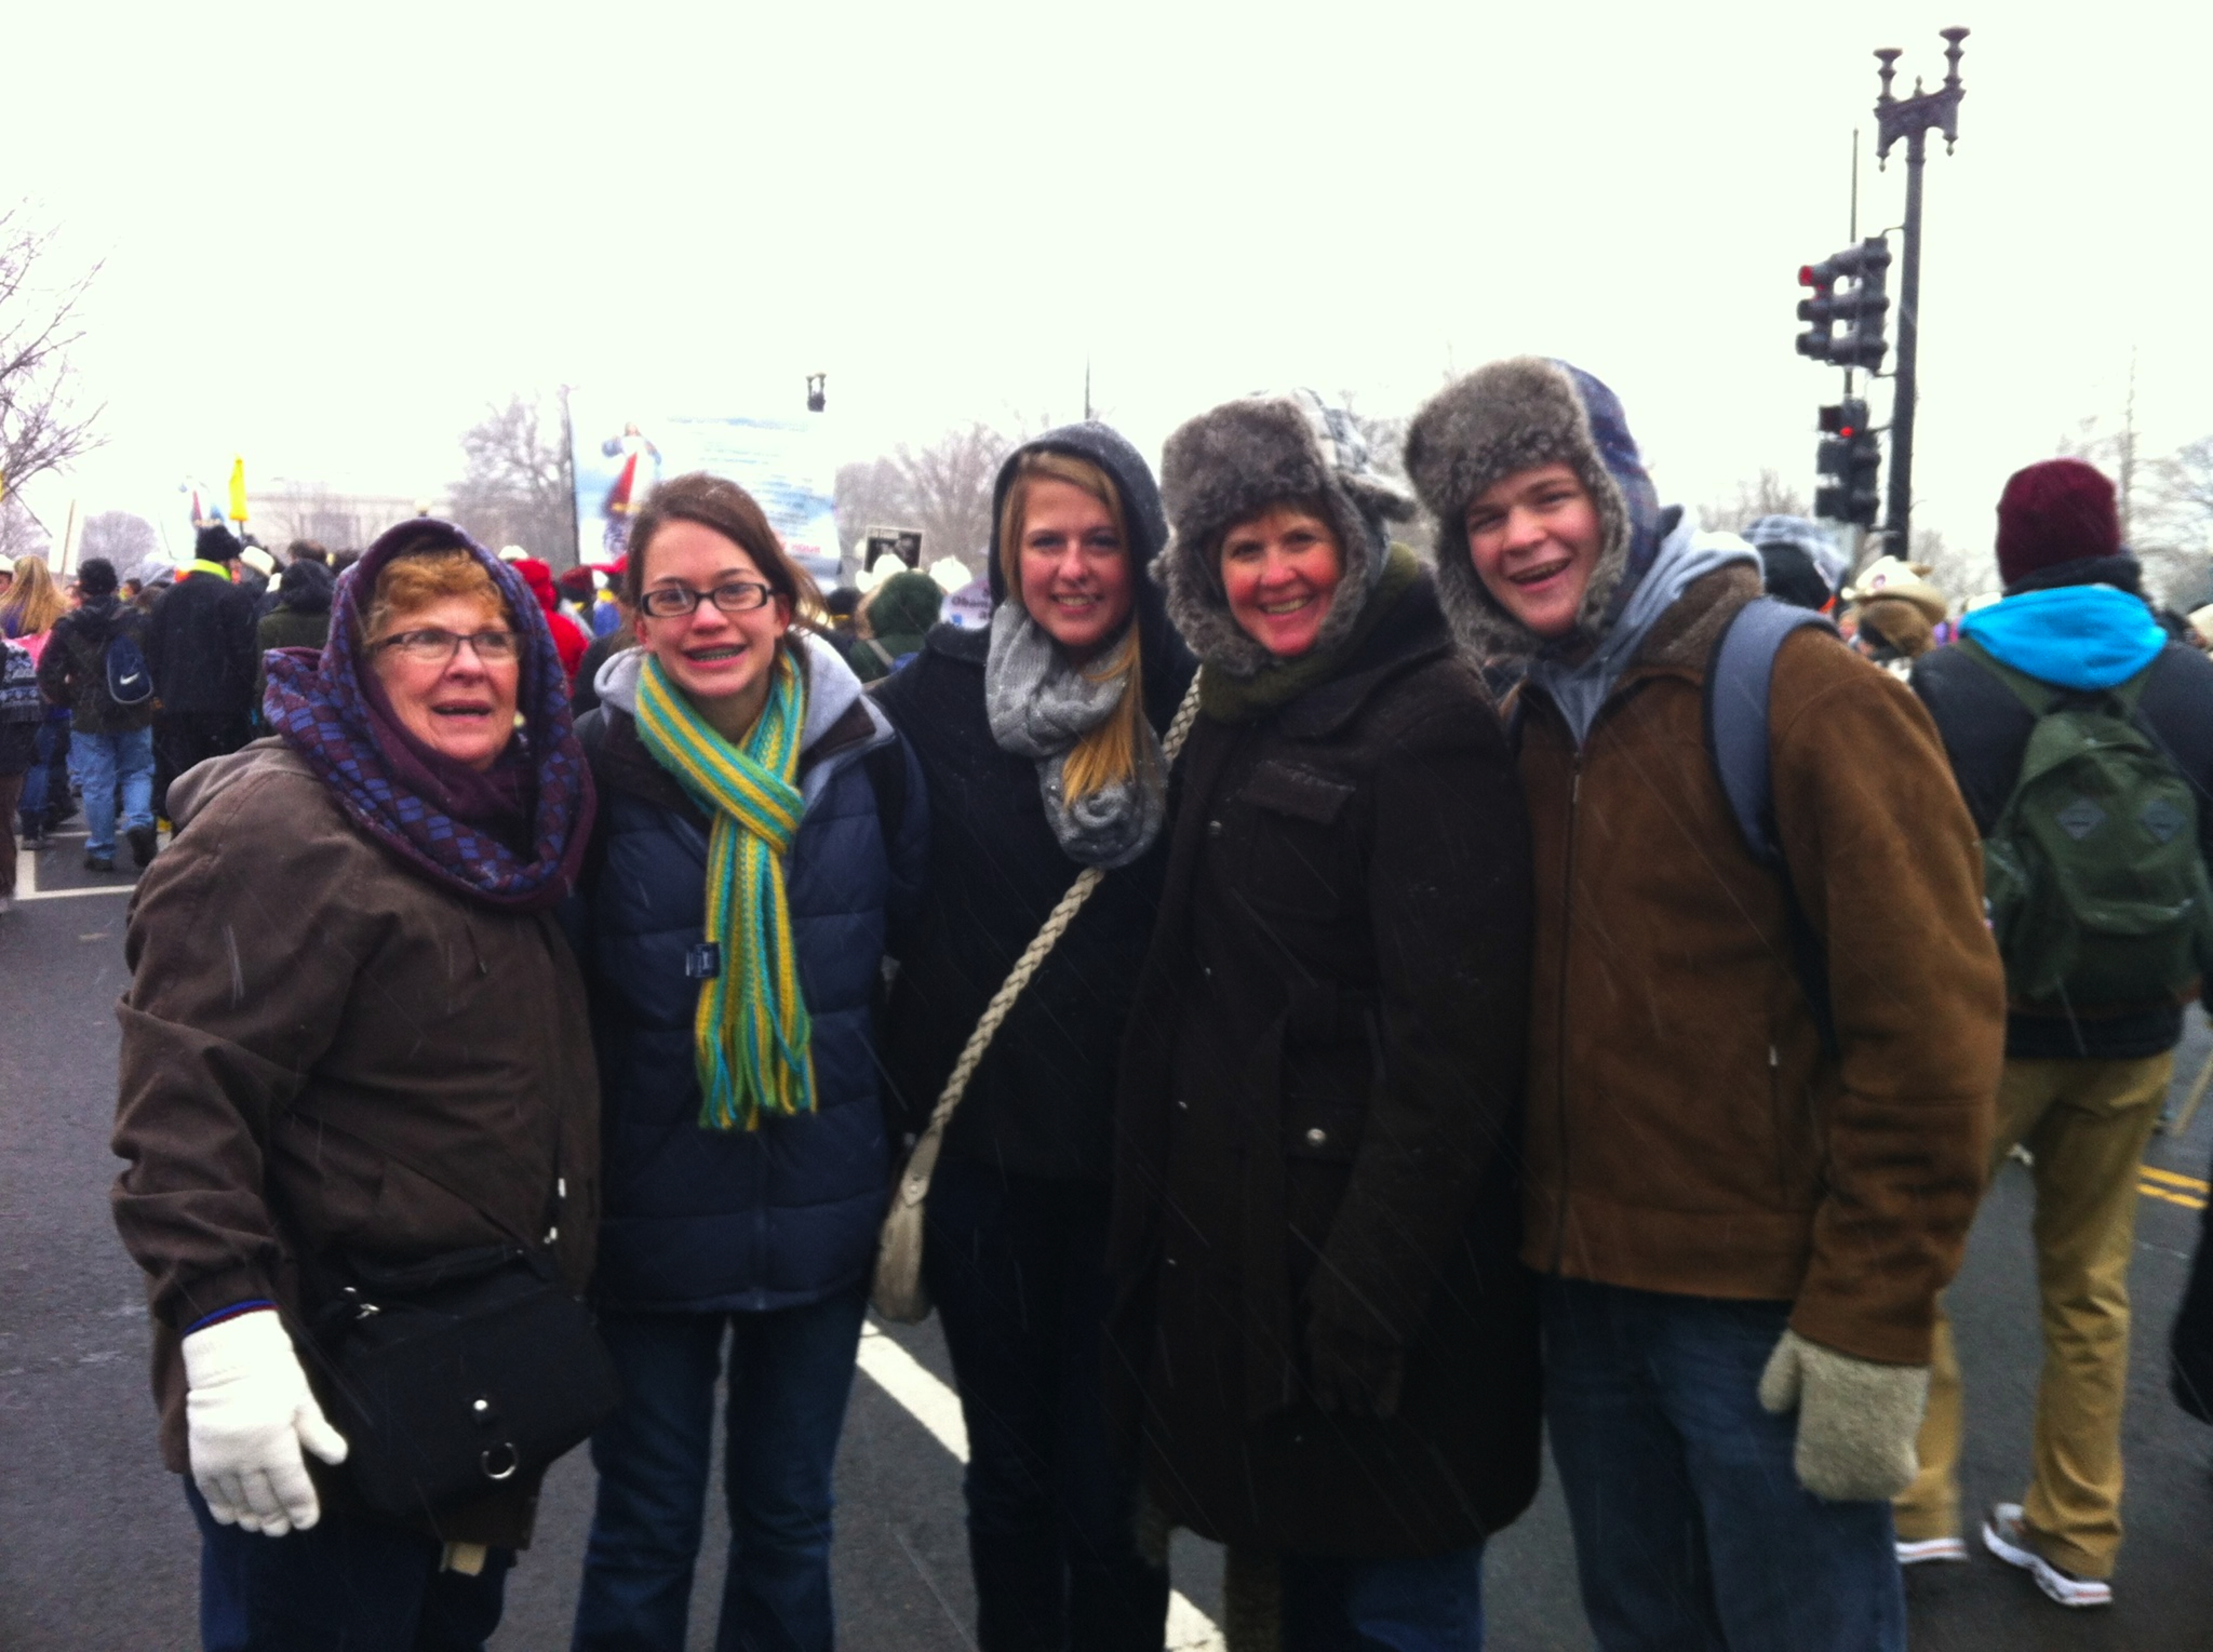 The Bishop family trekked to the March for Life to pray for human rights. They represent America.